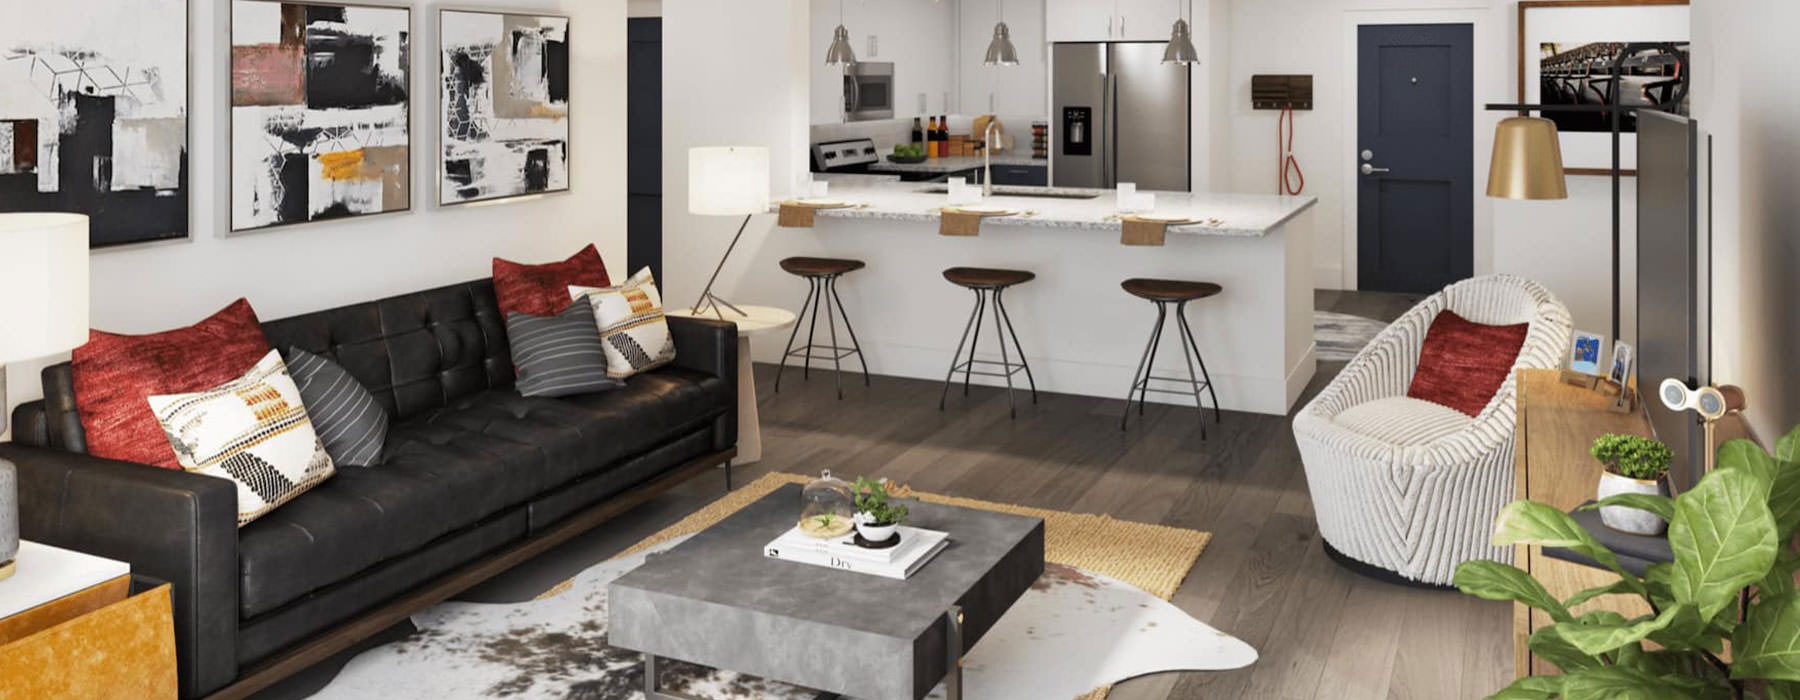 spacious living area with modern decor and with easy access to the kitchen